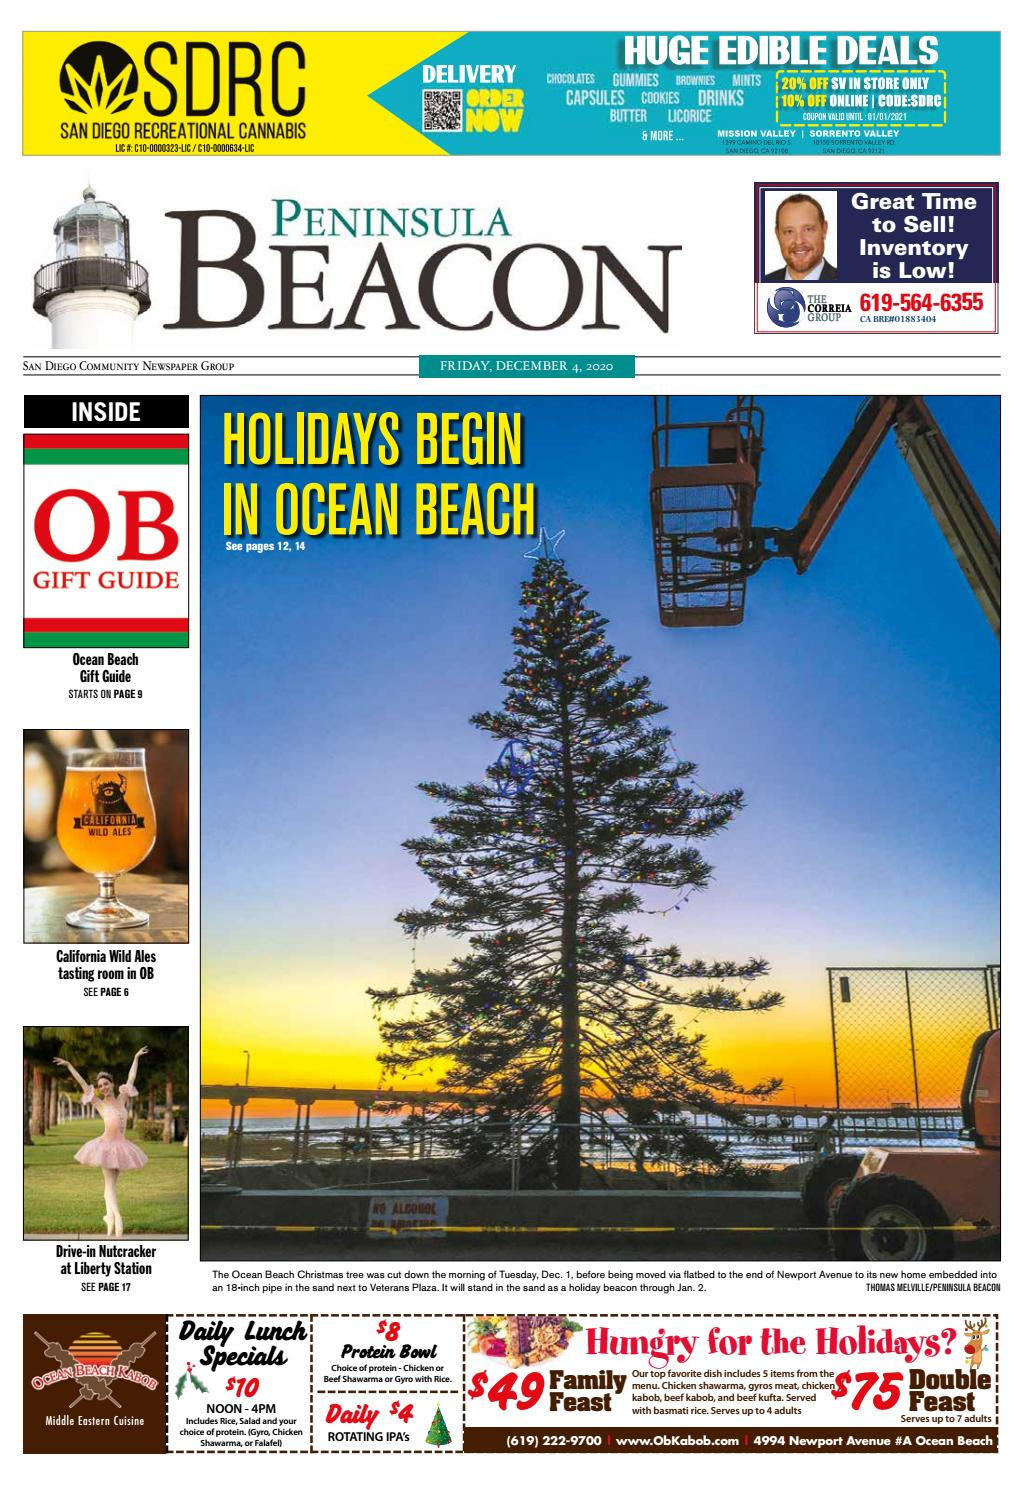 Sorrento Valley Zip Code : sorrento, valley, Peninsula, Beacon,, December, Diego, Community, Newspaper, Group, Issuu